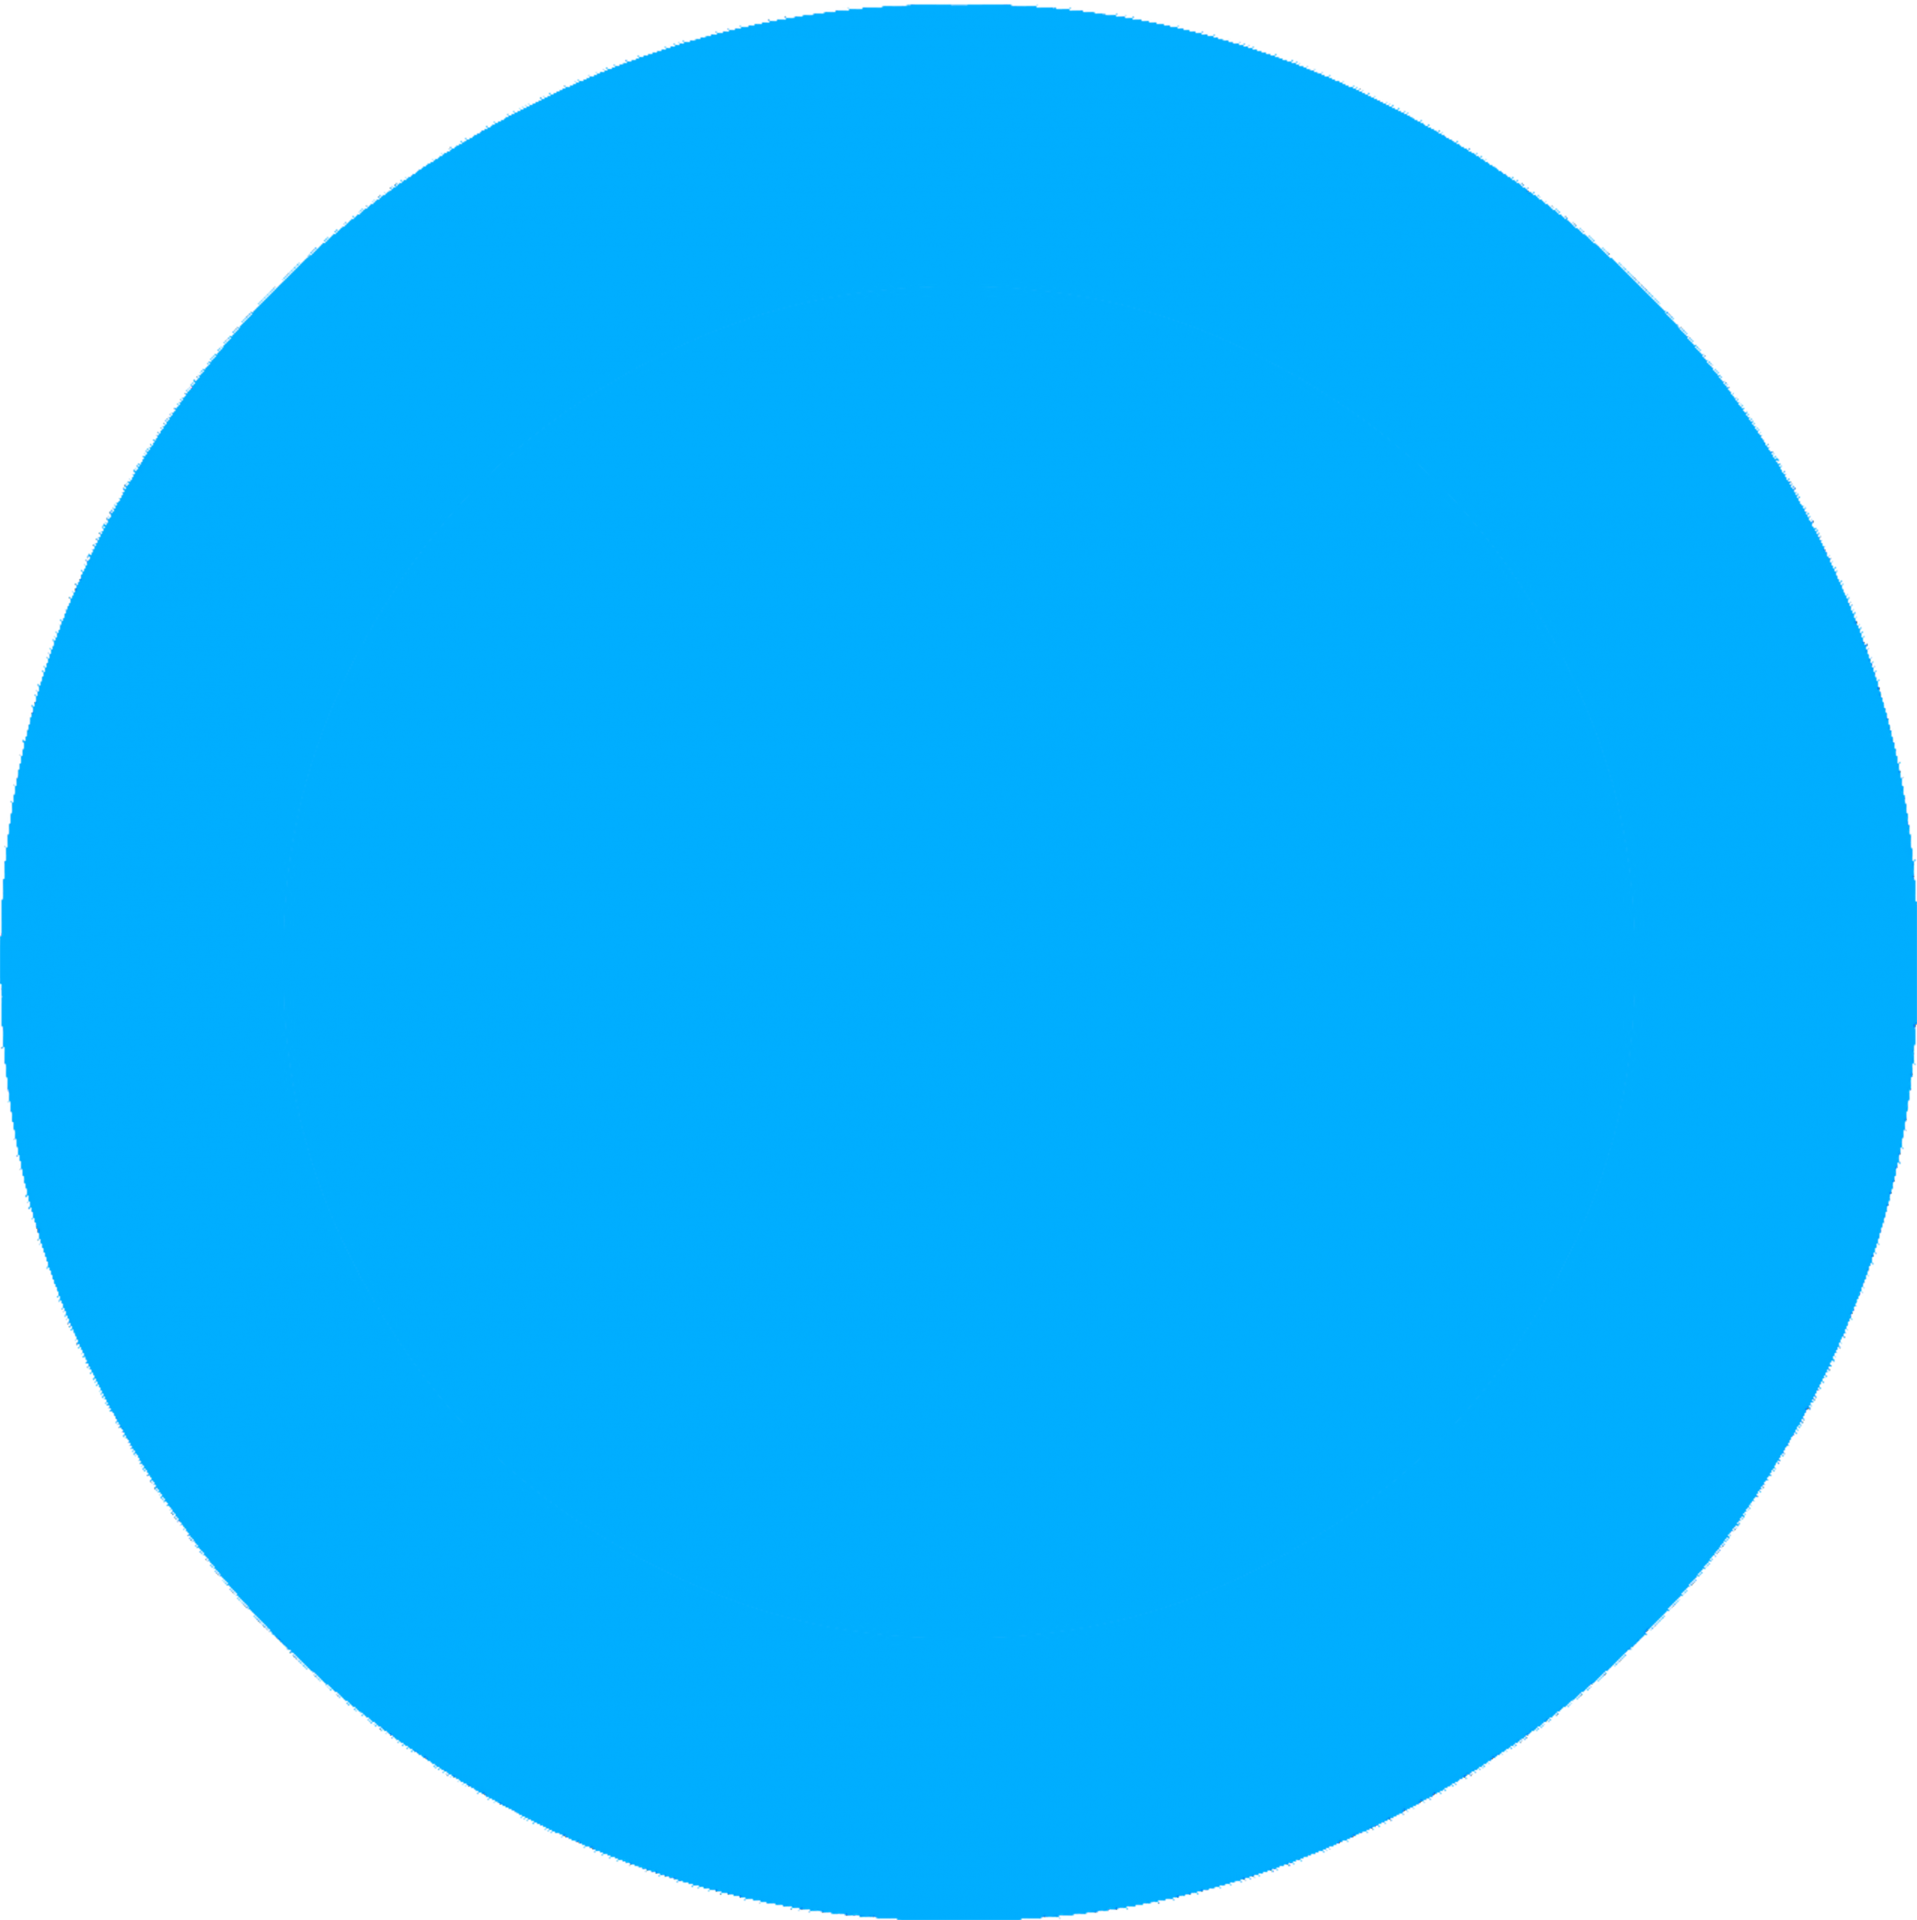 Periwinkle Blue Circle Blue Dot Image Icon Wall Decals